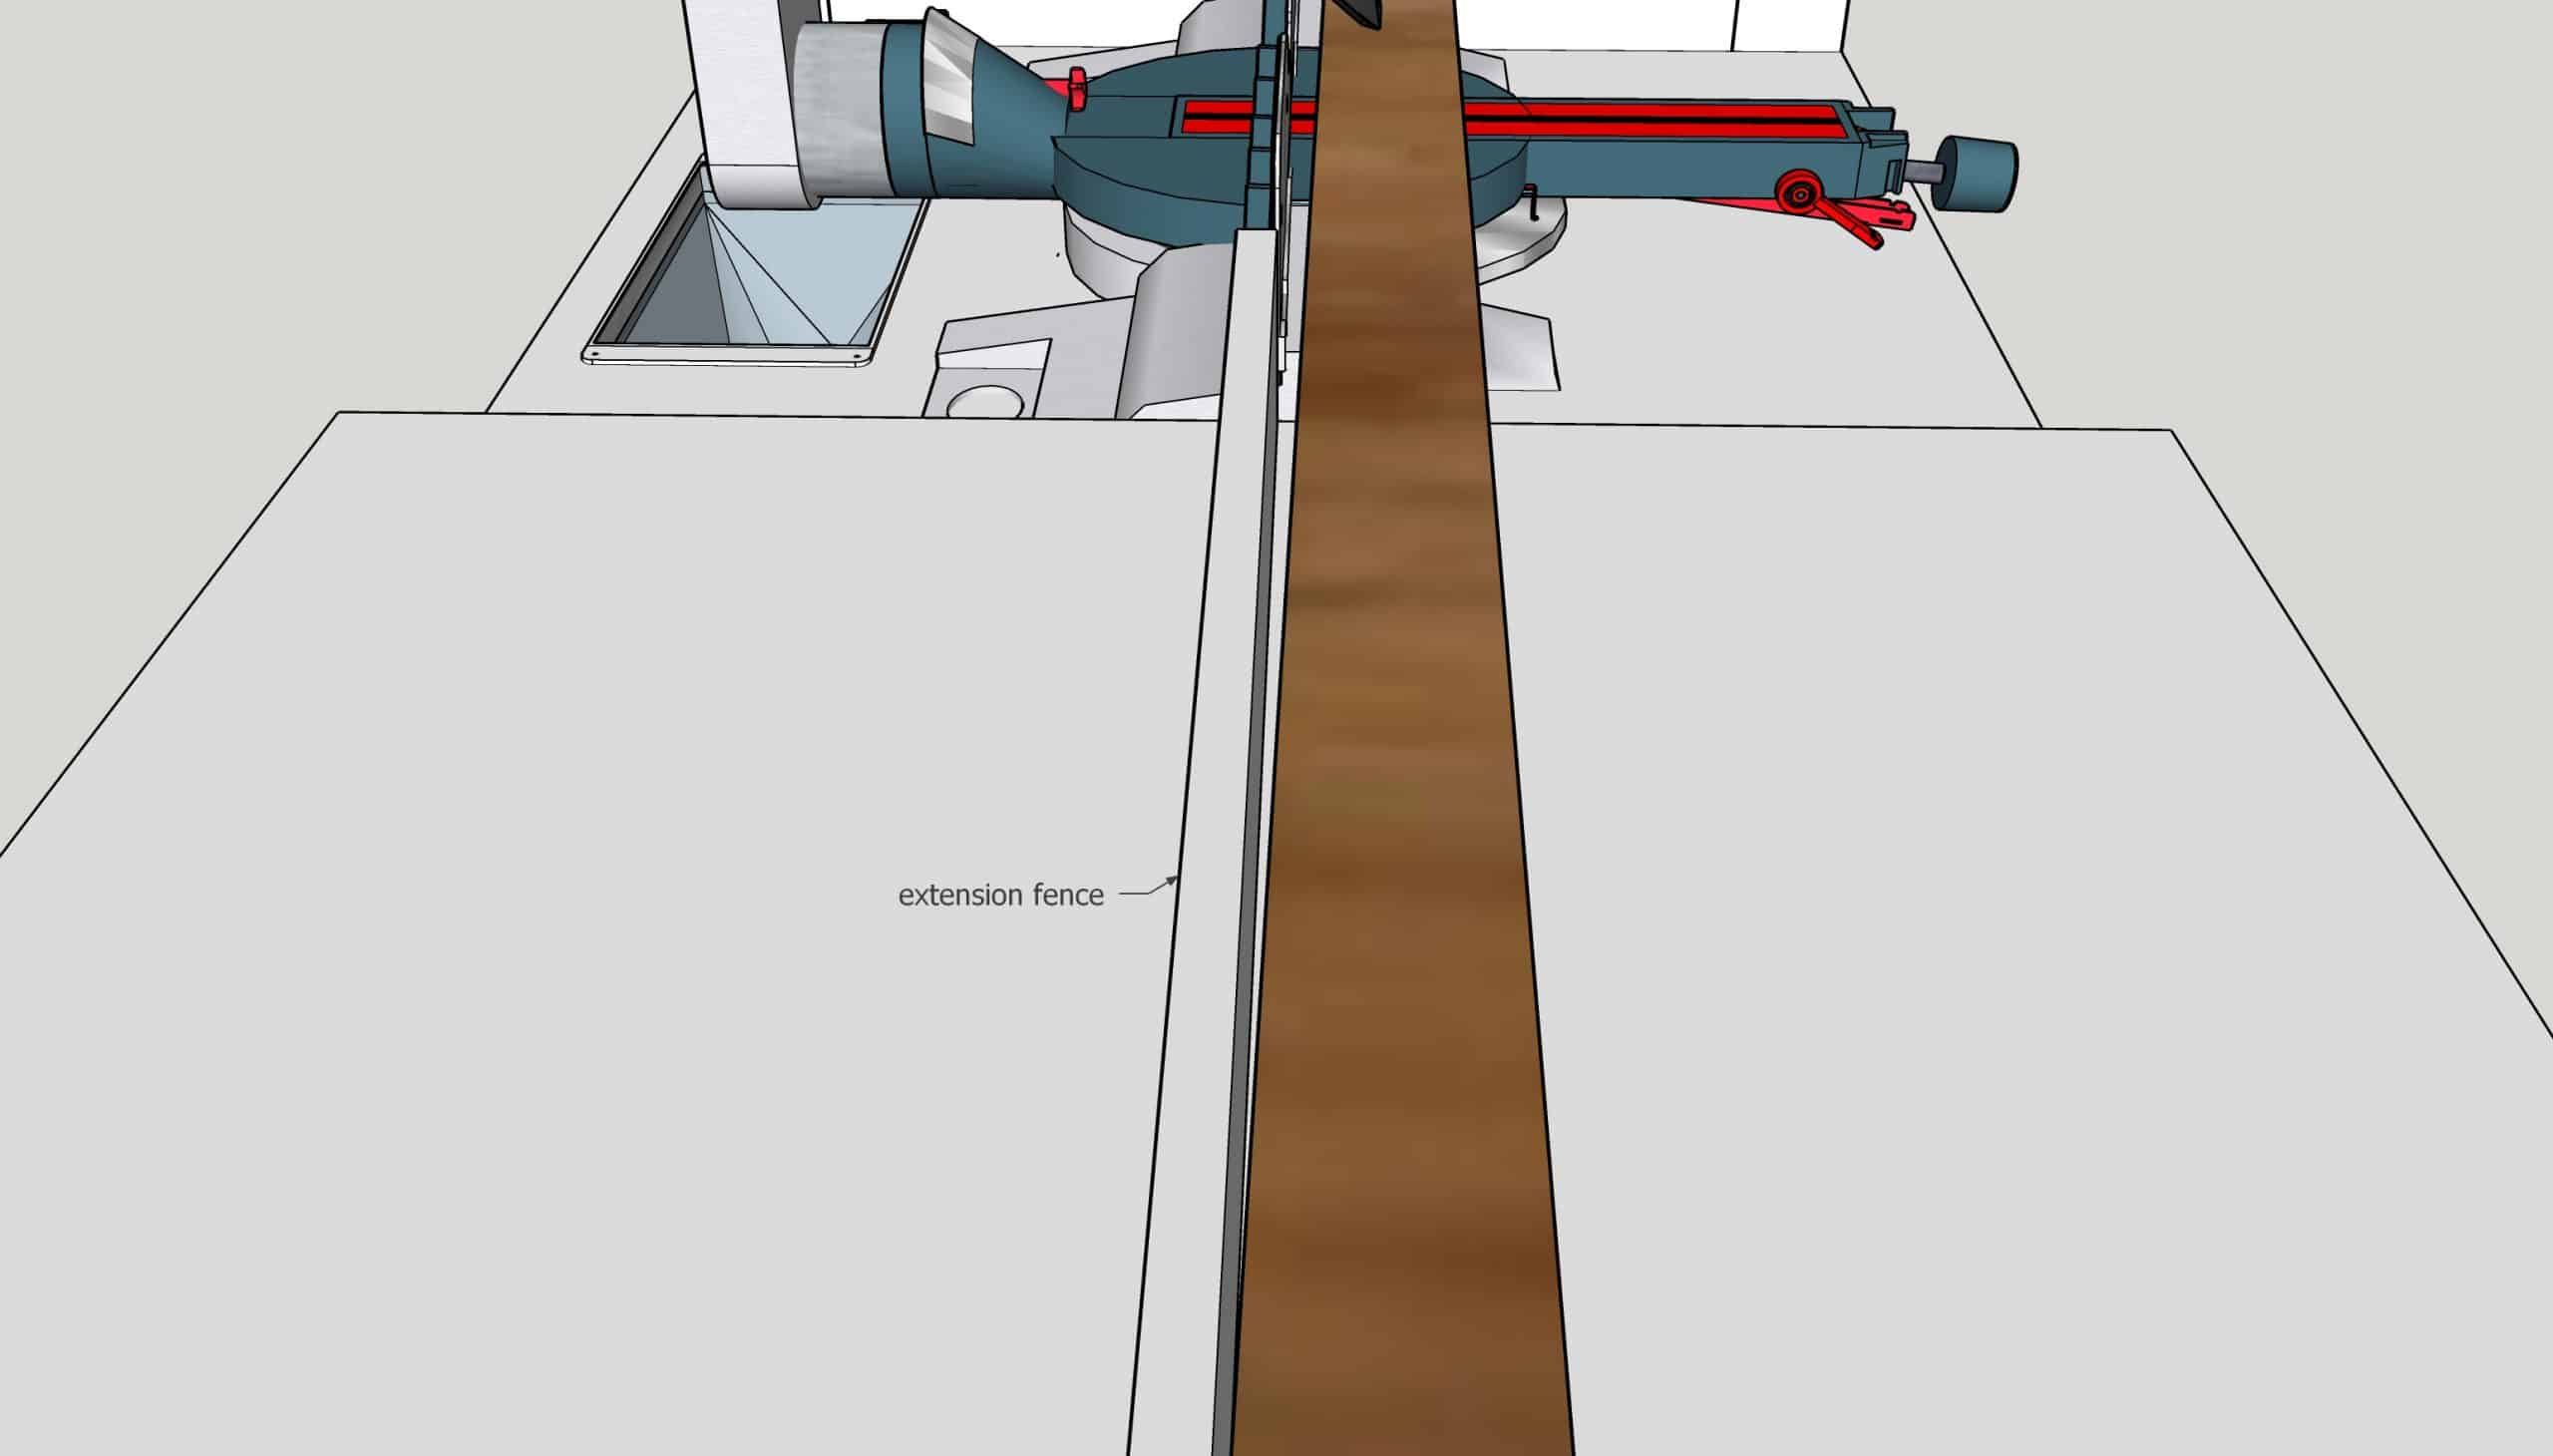 illustration of miter saw extension fence causing board to be cut incorrectly